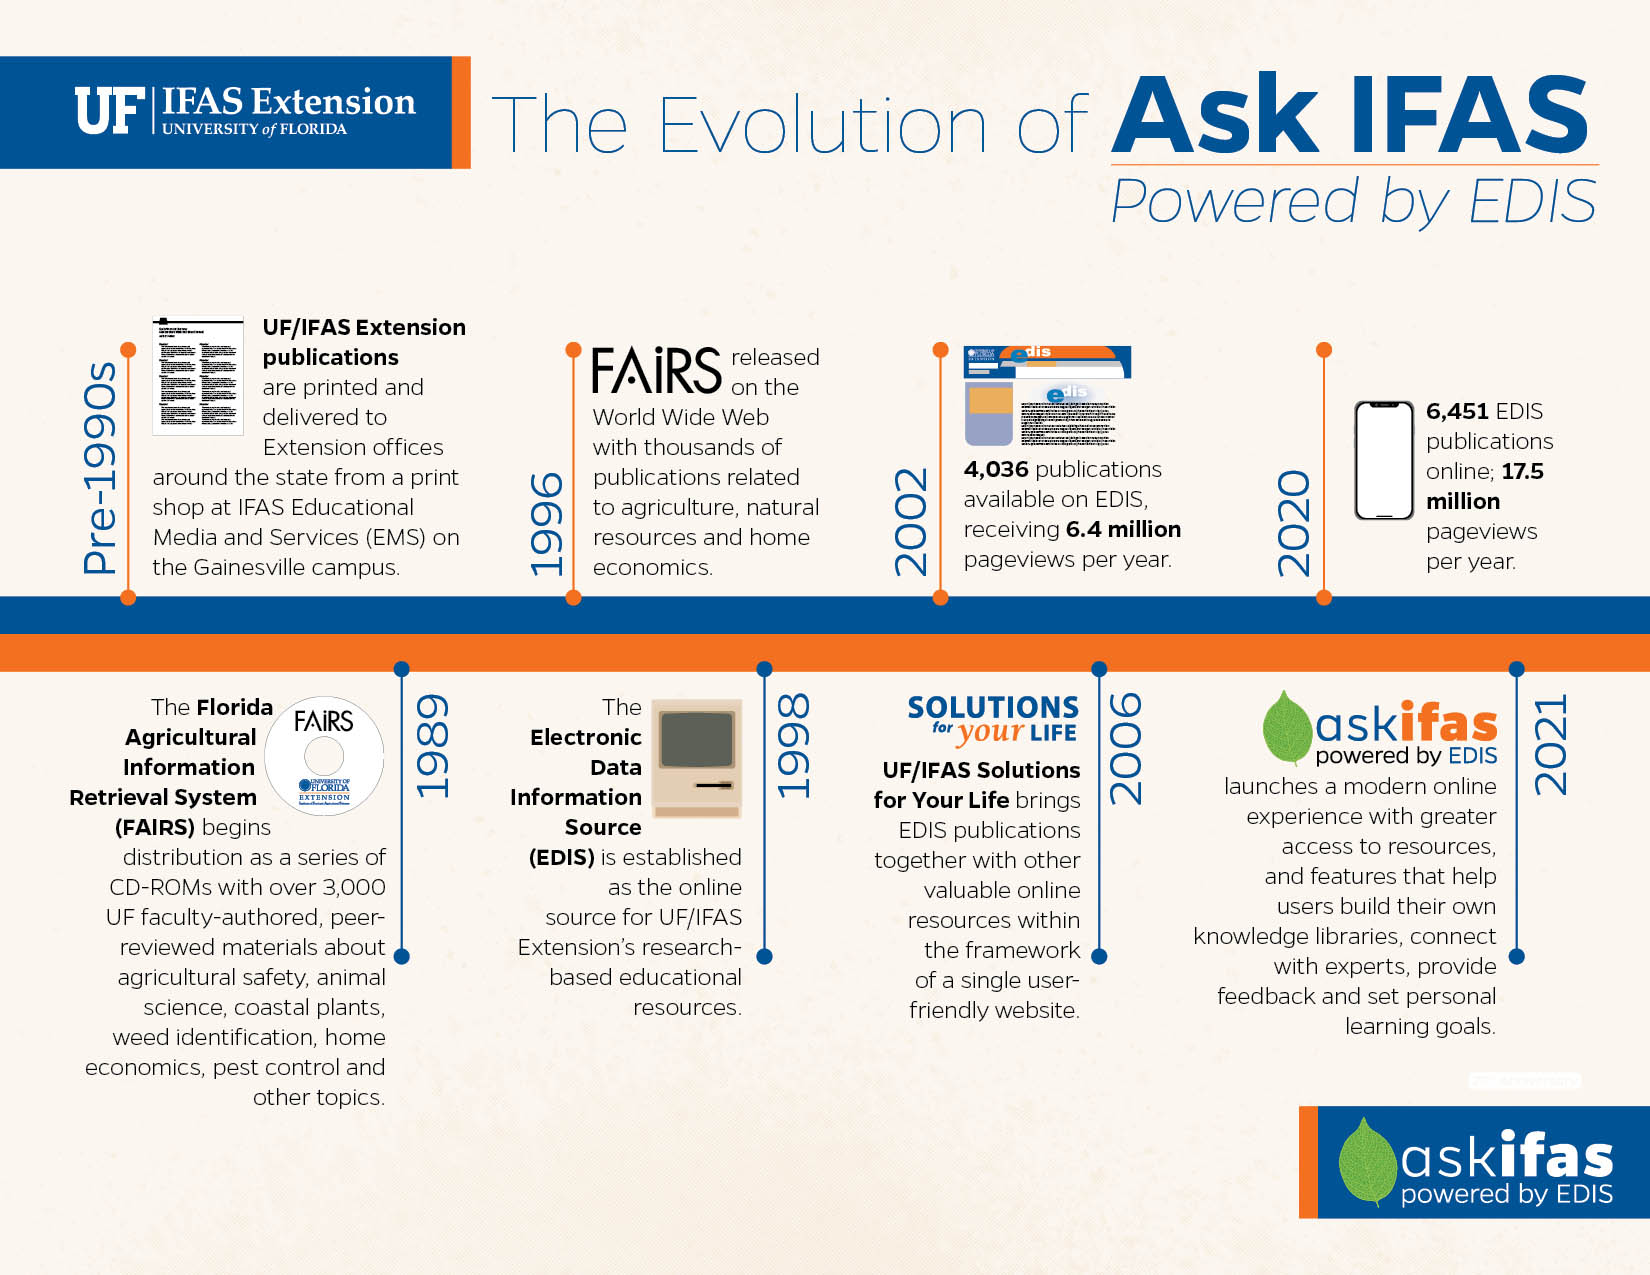 The Evolution of Ask IFAS